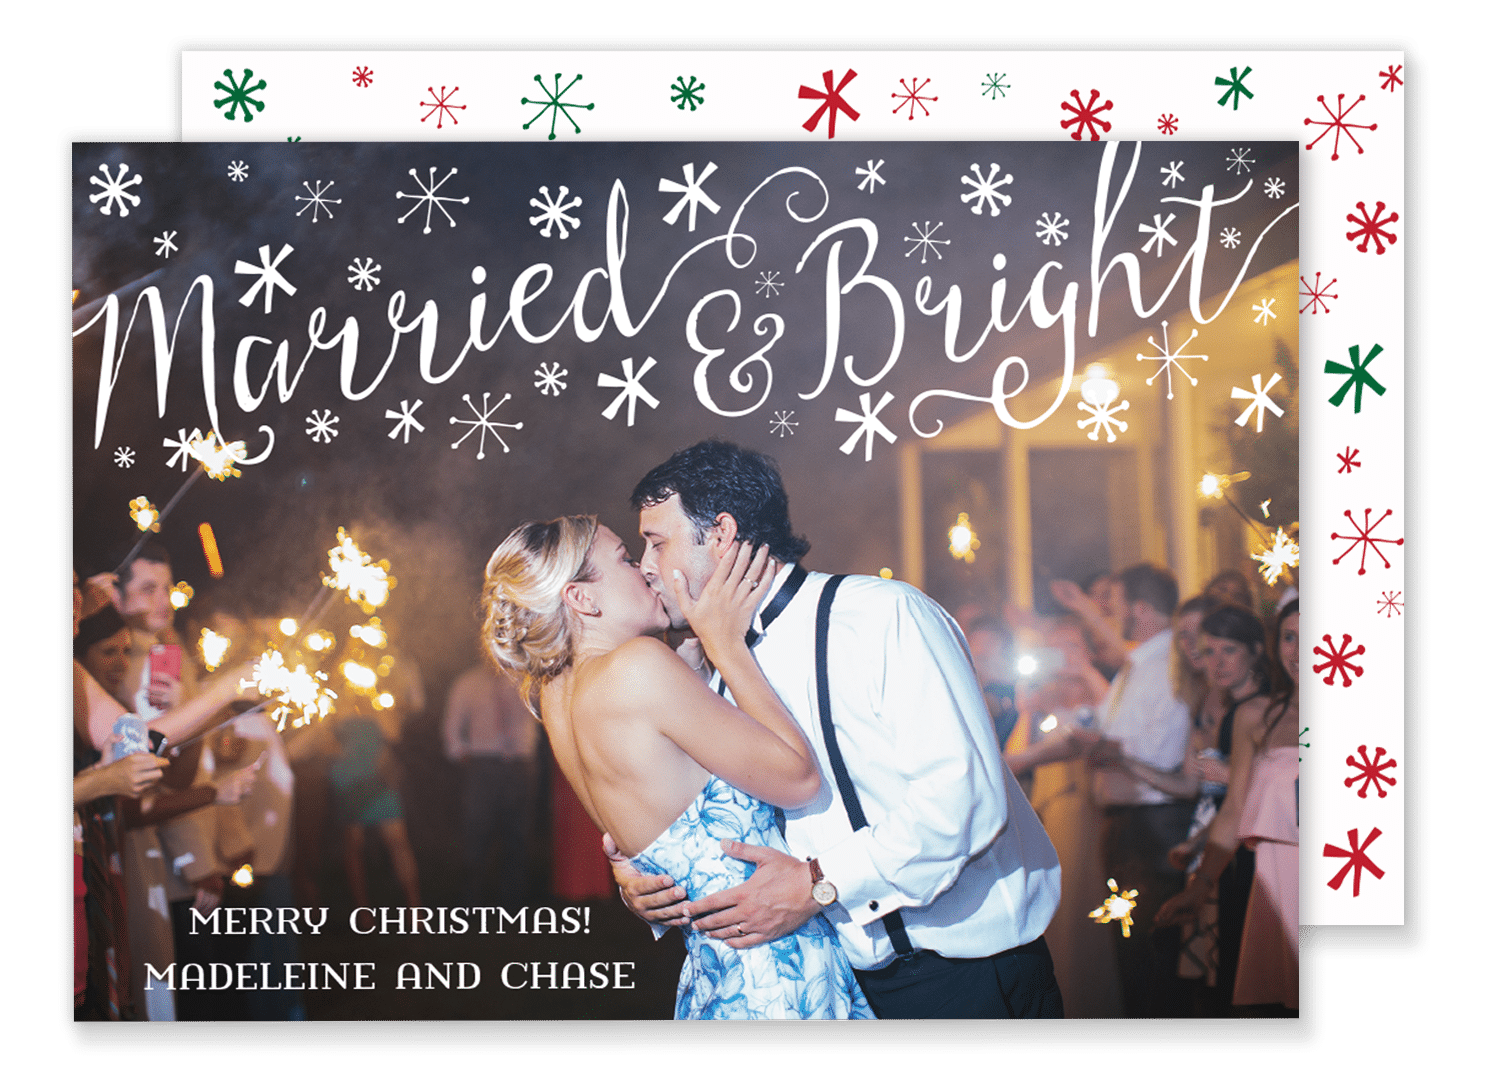 Married and Bright Christmas Card – Gilm Press